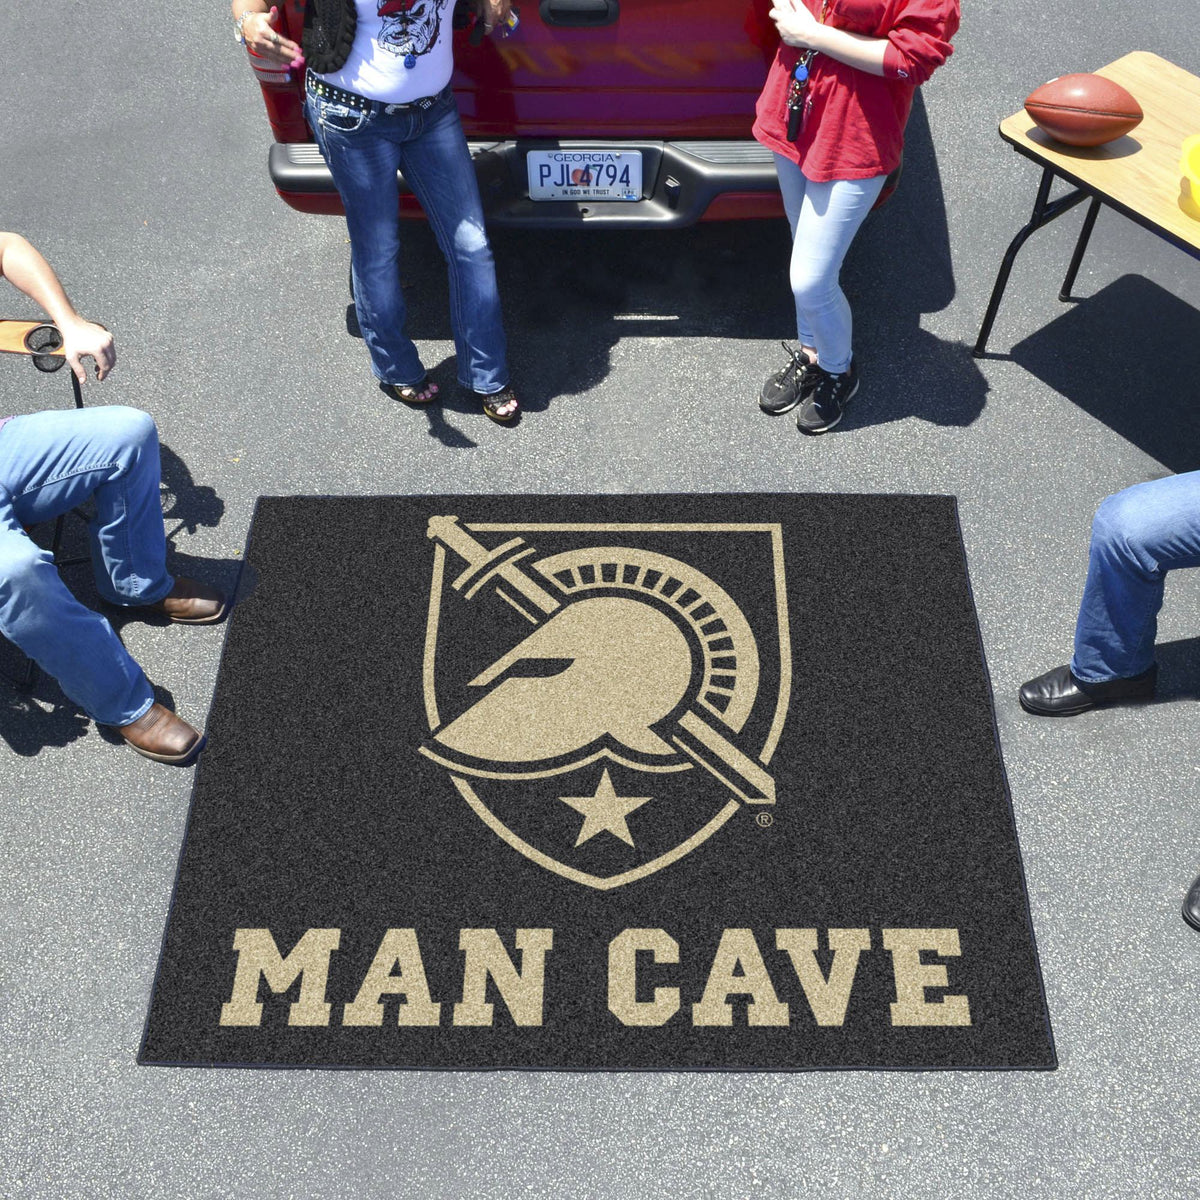 Collegiate - Man Cave Tailgater Collegiate Mats, Rectangular Mats, Man Cave Tailgater, Collegiate, Home Fan Mats Army West Point